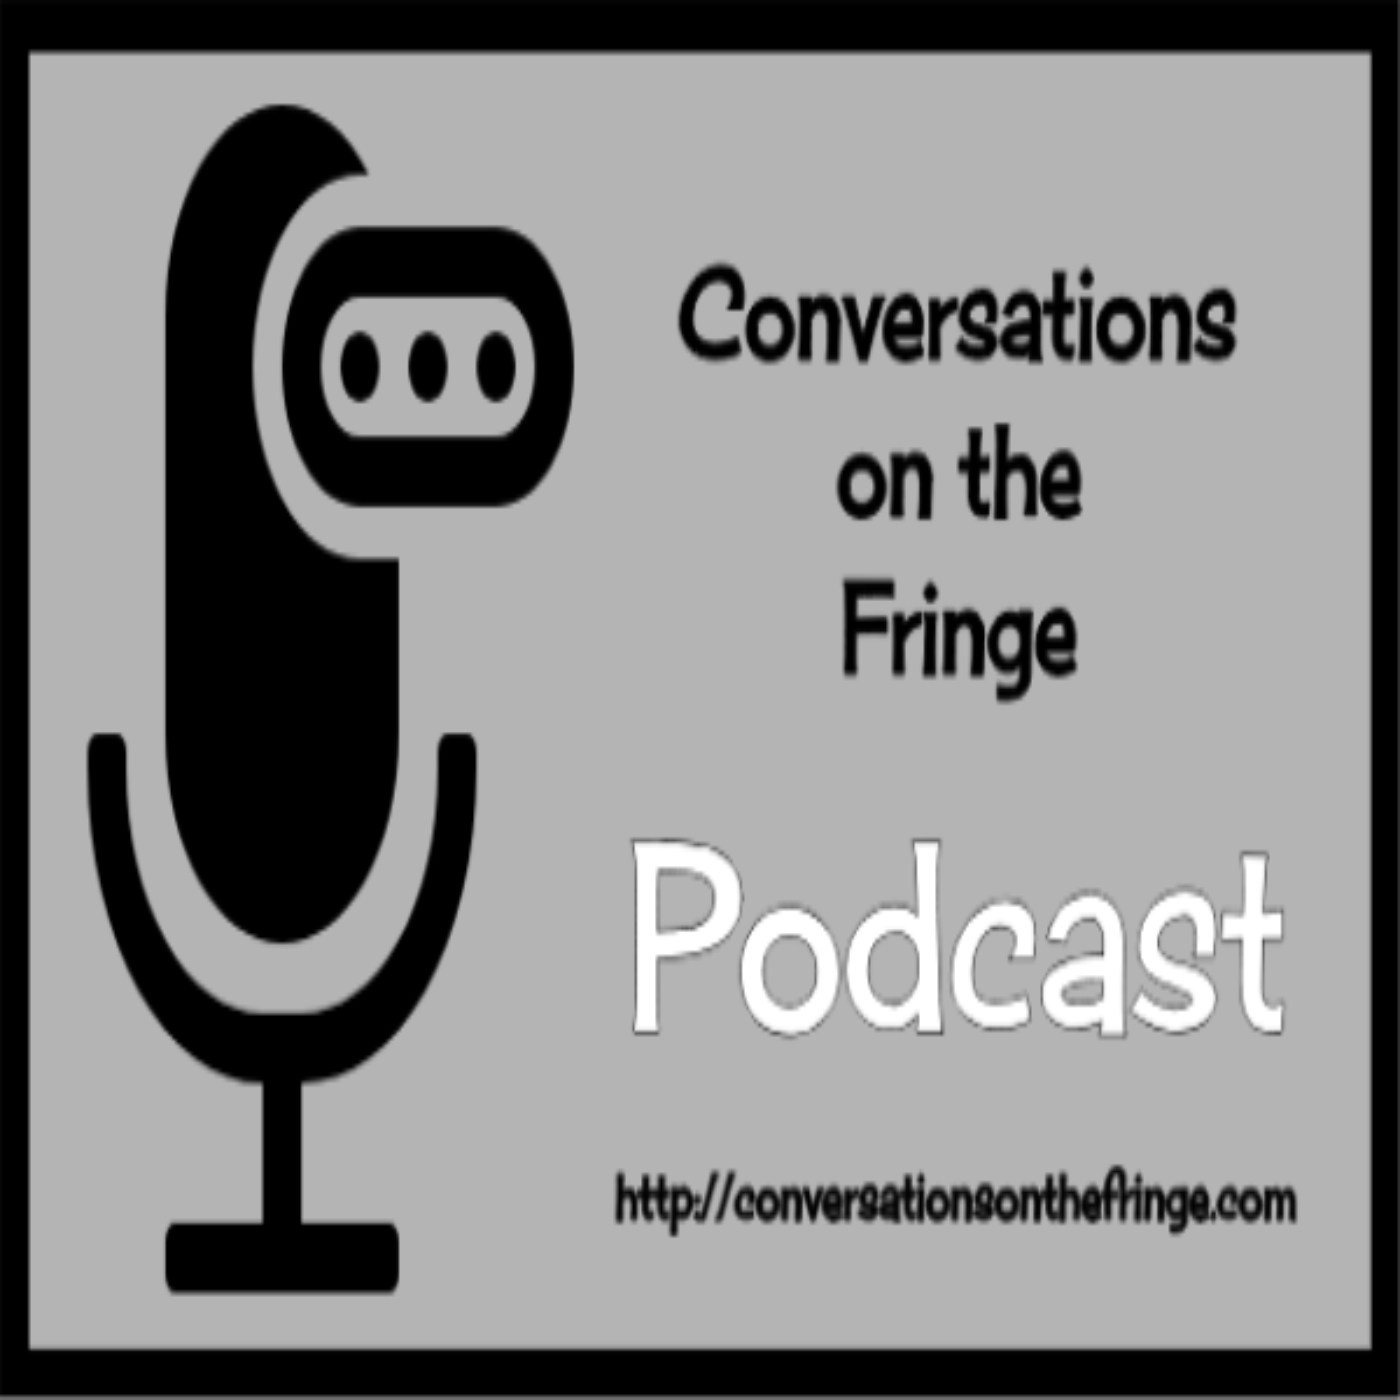 Conversations on the Fringe